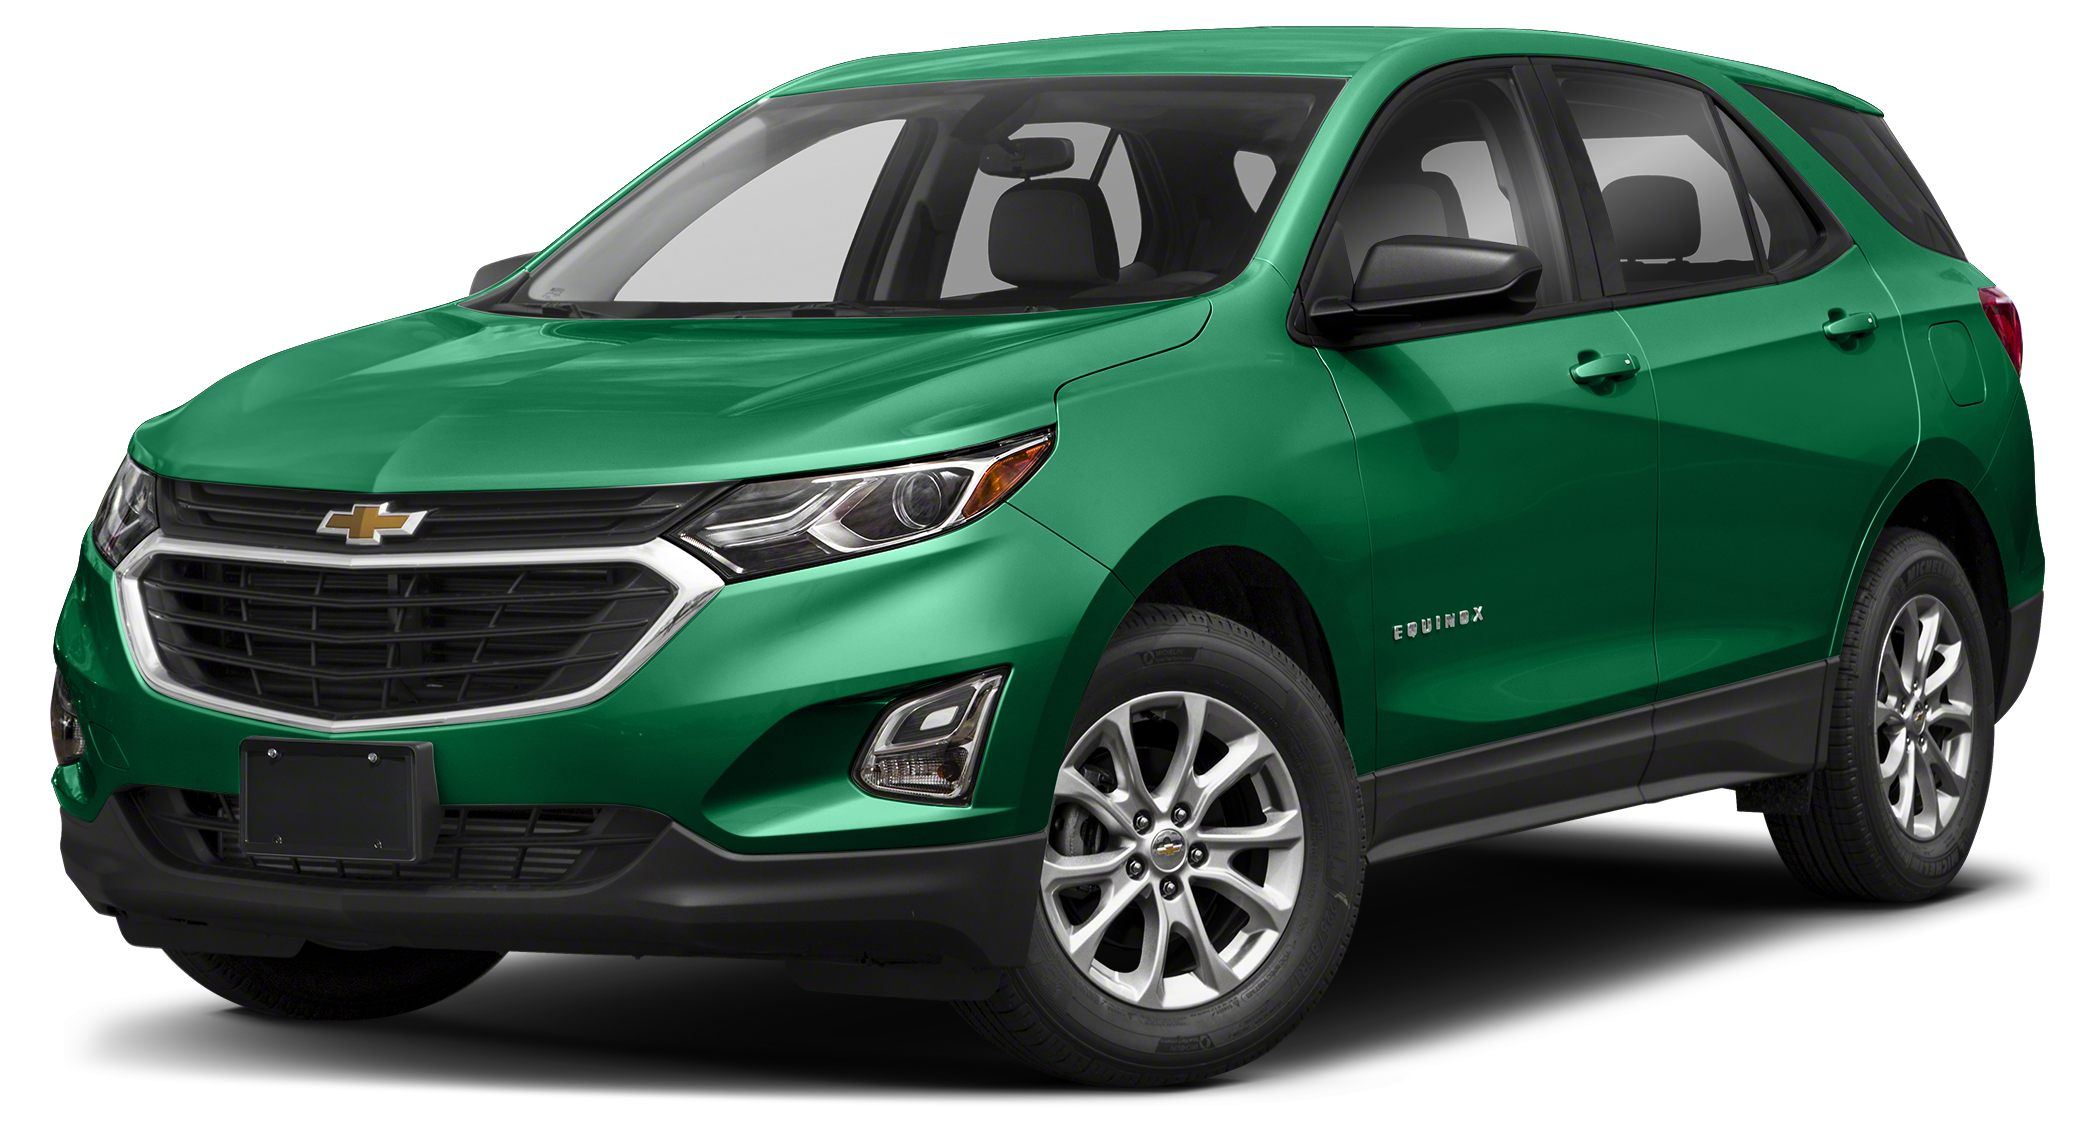 location superior chevrolet conway. Cars Review. Best American Auto & Cars Review